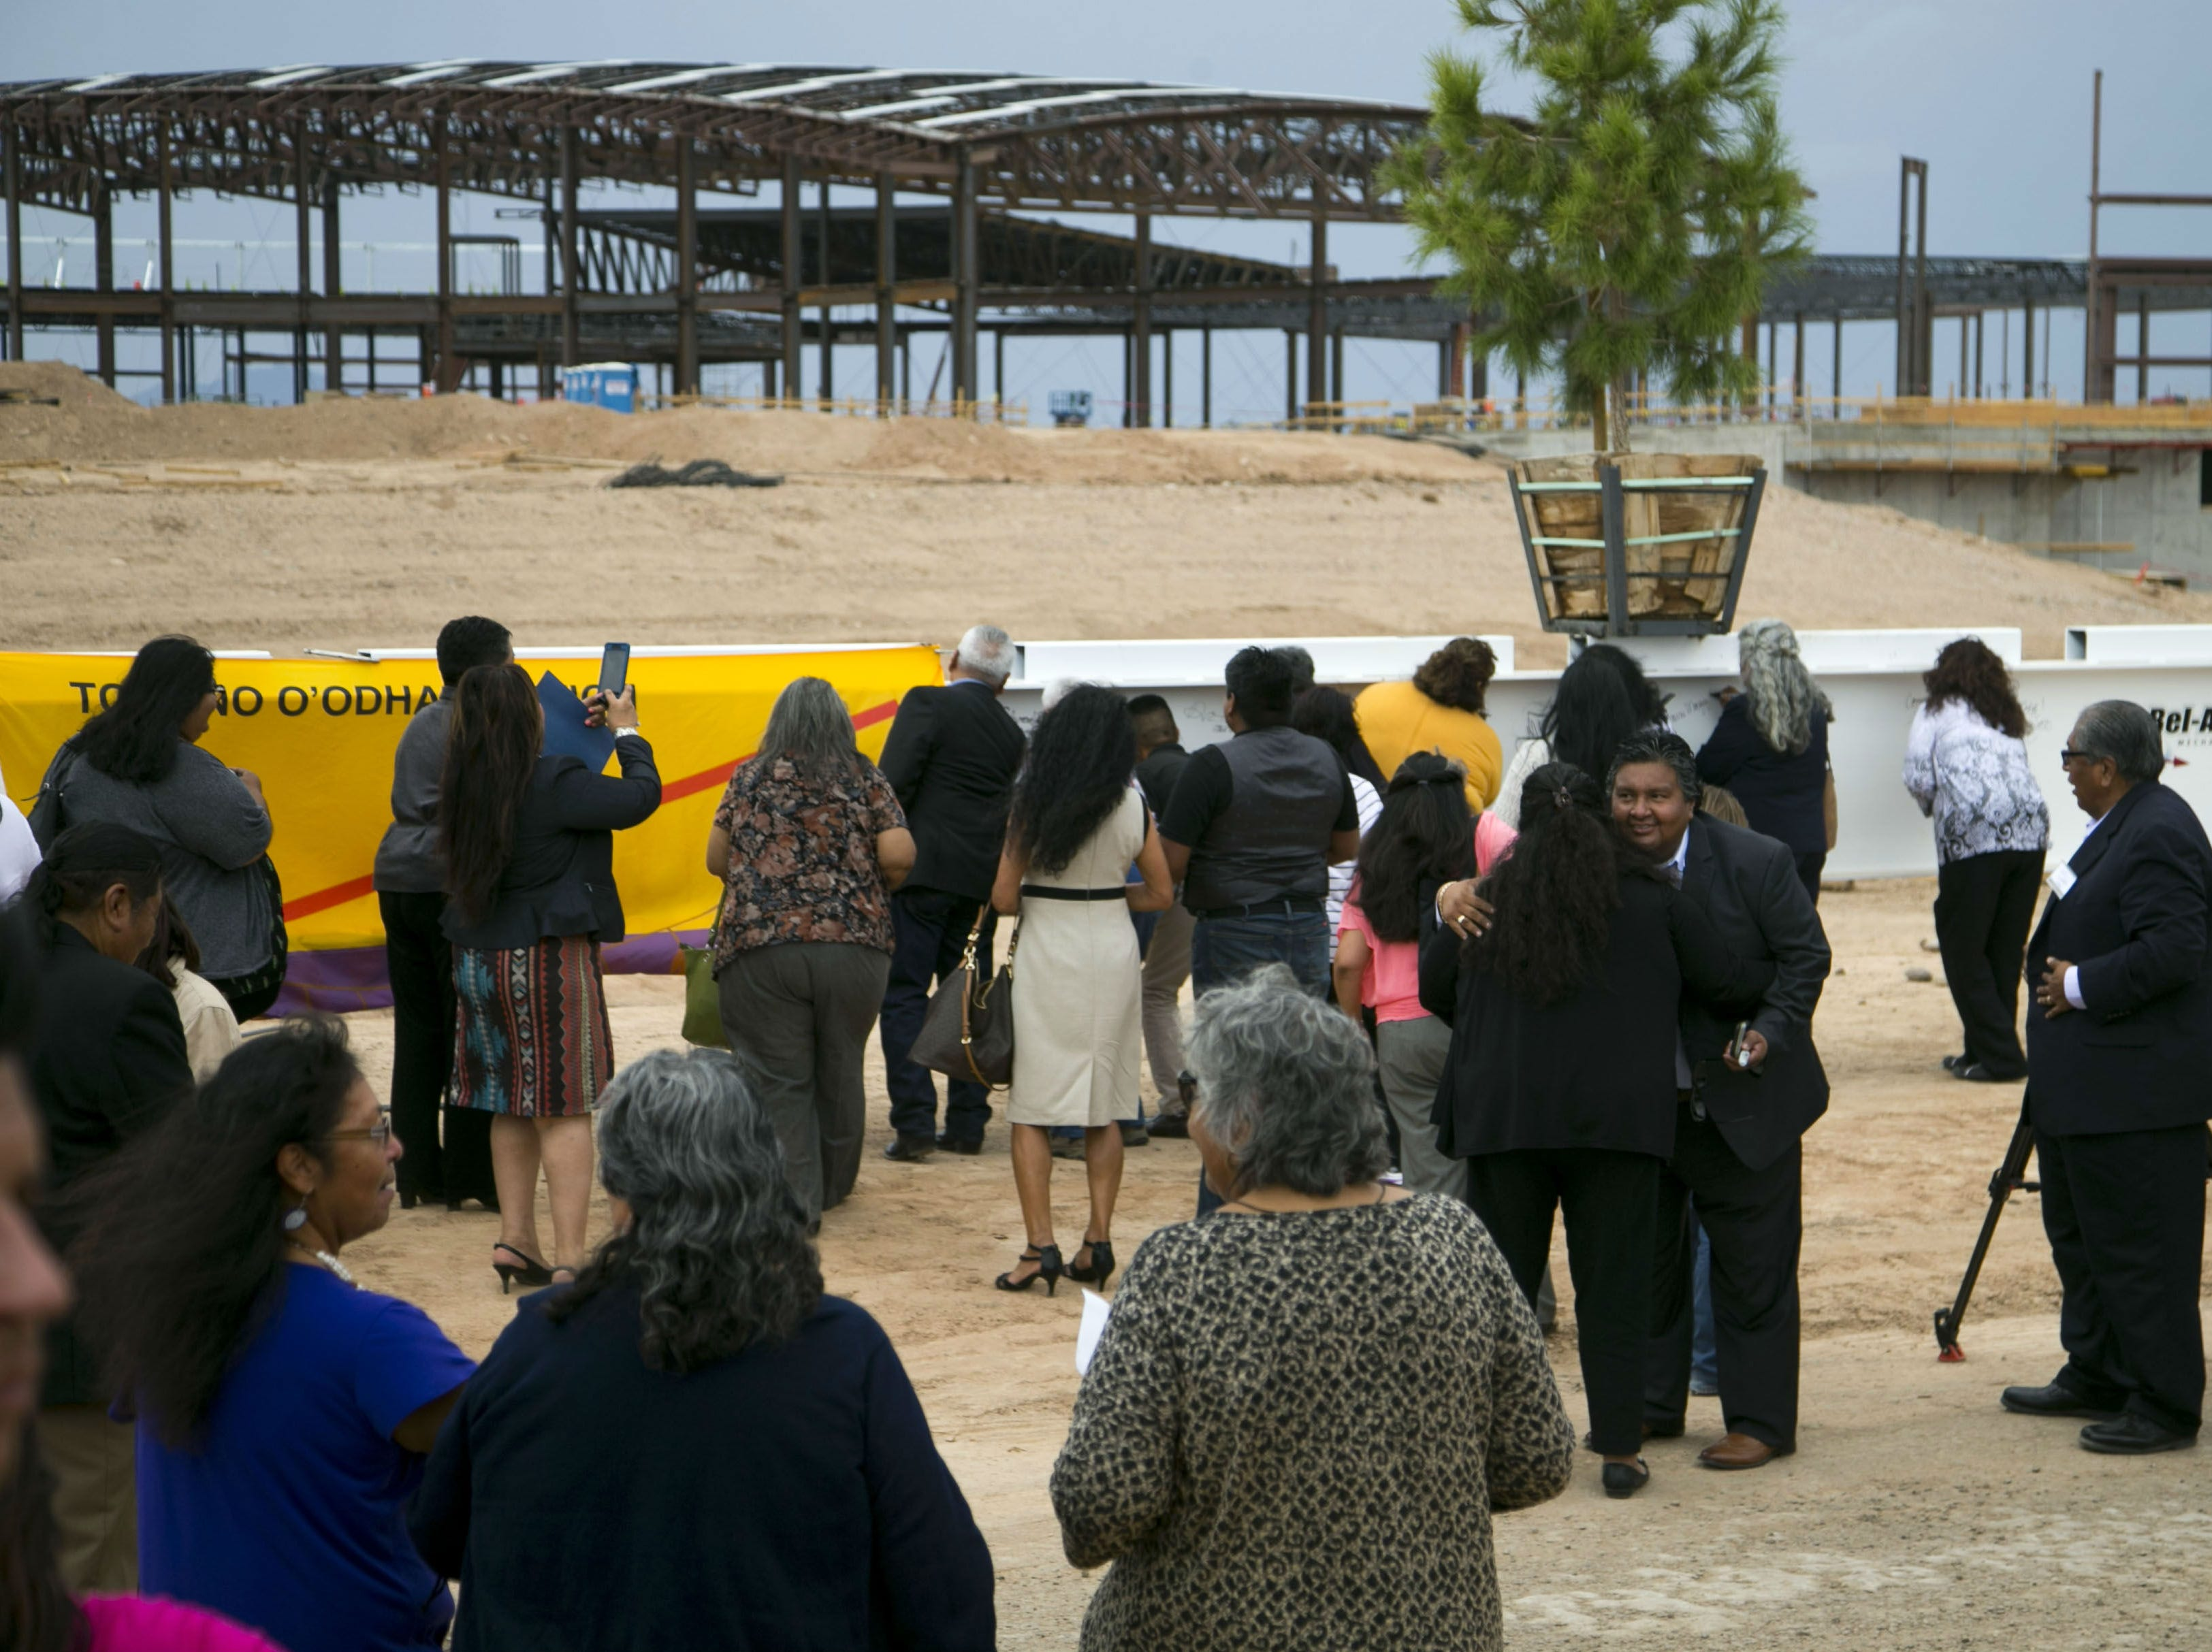 Members of the Tohono O'odham Nation and other dignitaries sign an I-Beam during a topping off ceremony to mark a construction milestone in the expansion of the Desert Diamond West Valley Casino in Glendale on Sept. 19, 2018.